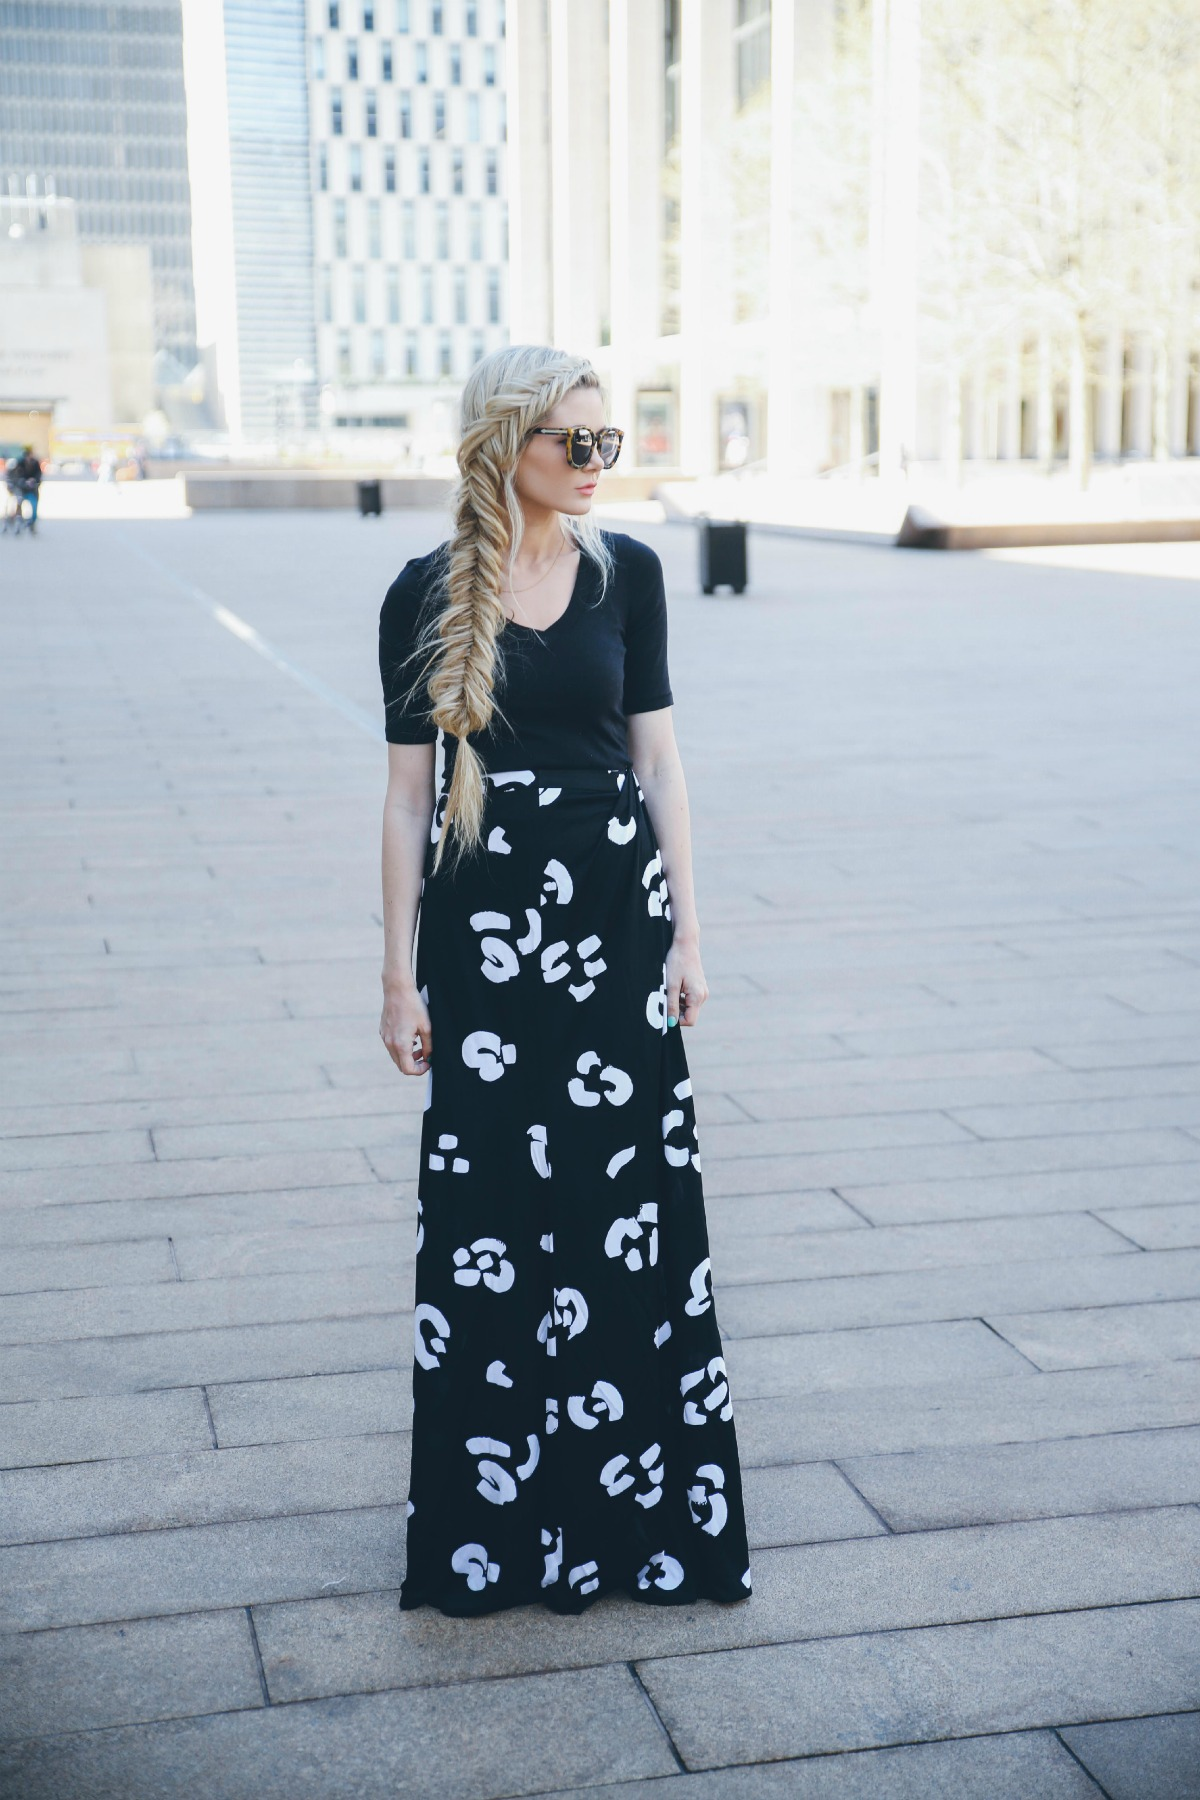 Amber Fillerup Clark is wearing a black top from Splendid, black and white skirt from Issa and the sunglasses are from from Karen Walker